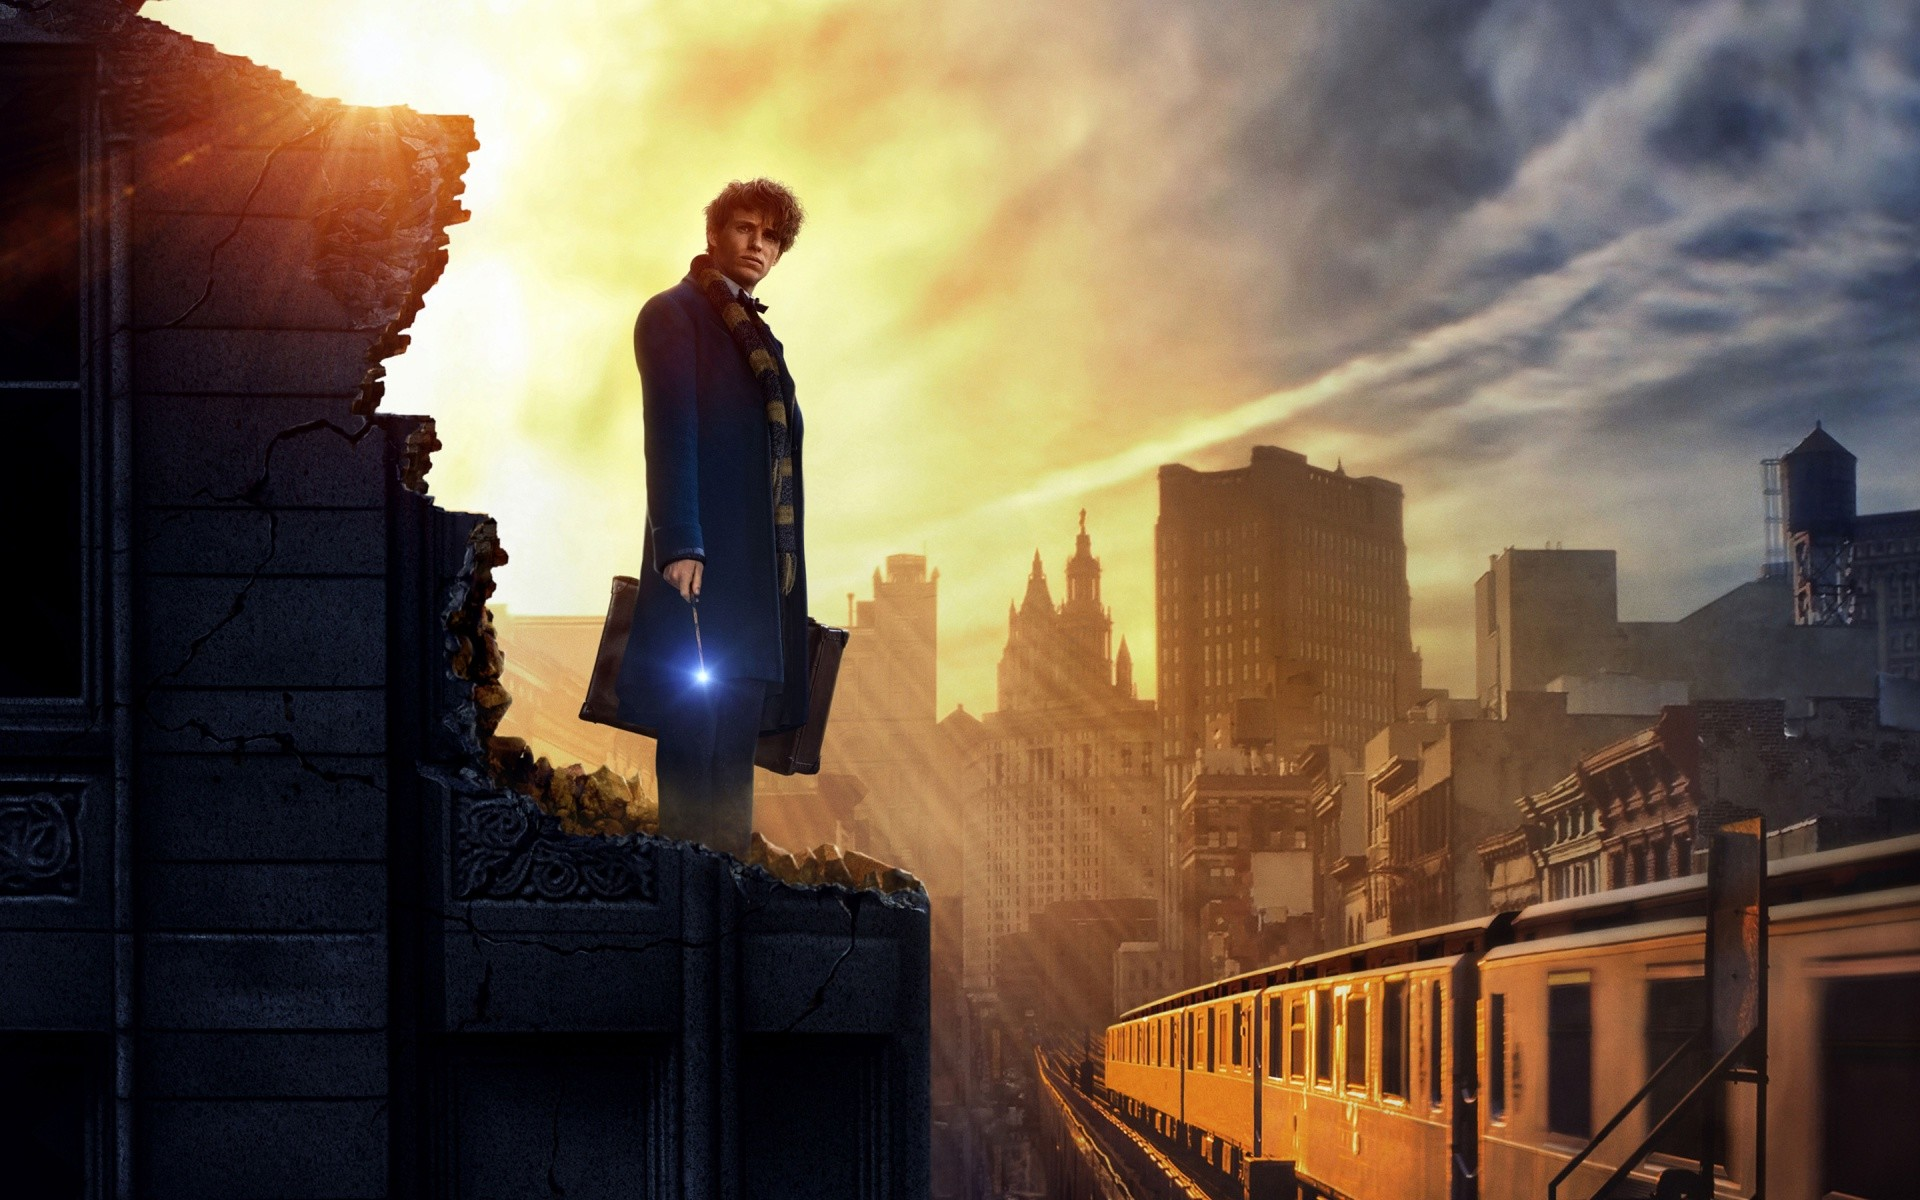 Fantastic Beasts And Where To Find Them Wallpapers ·①